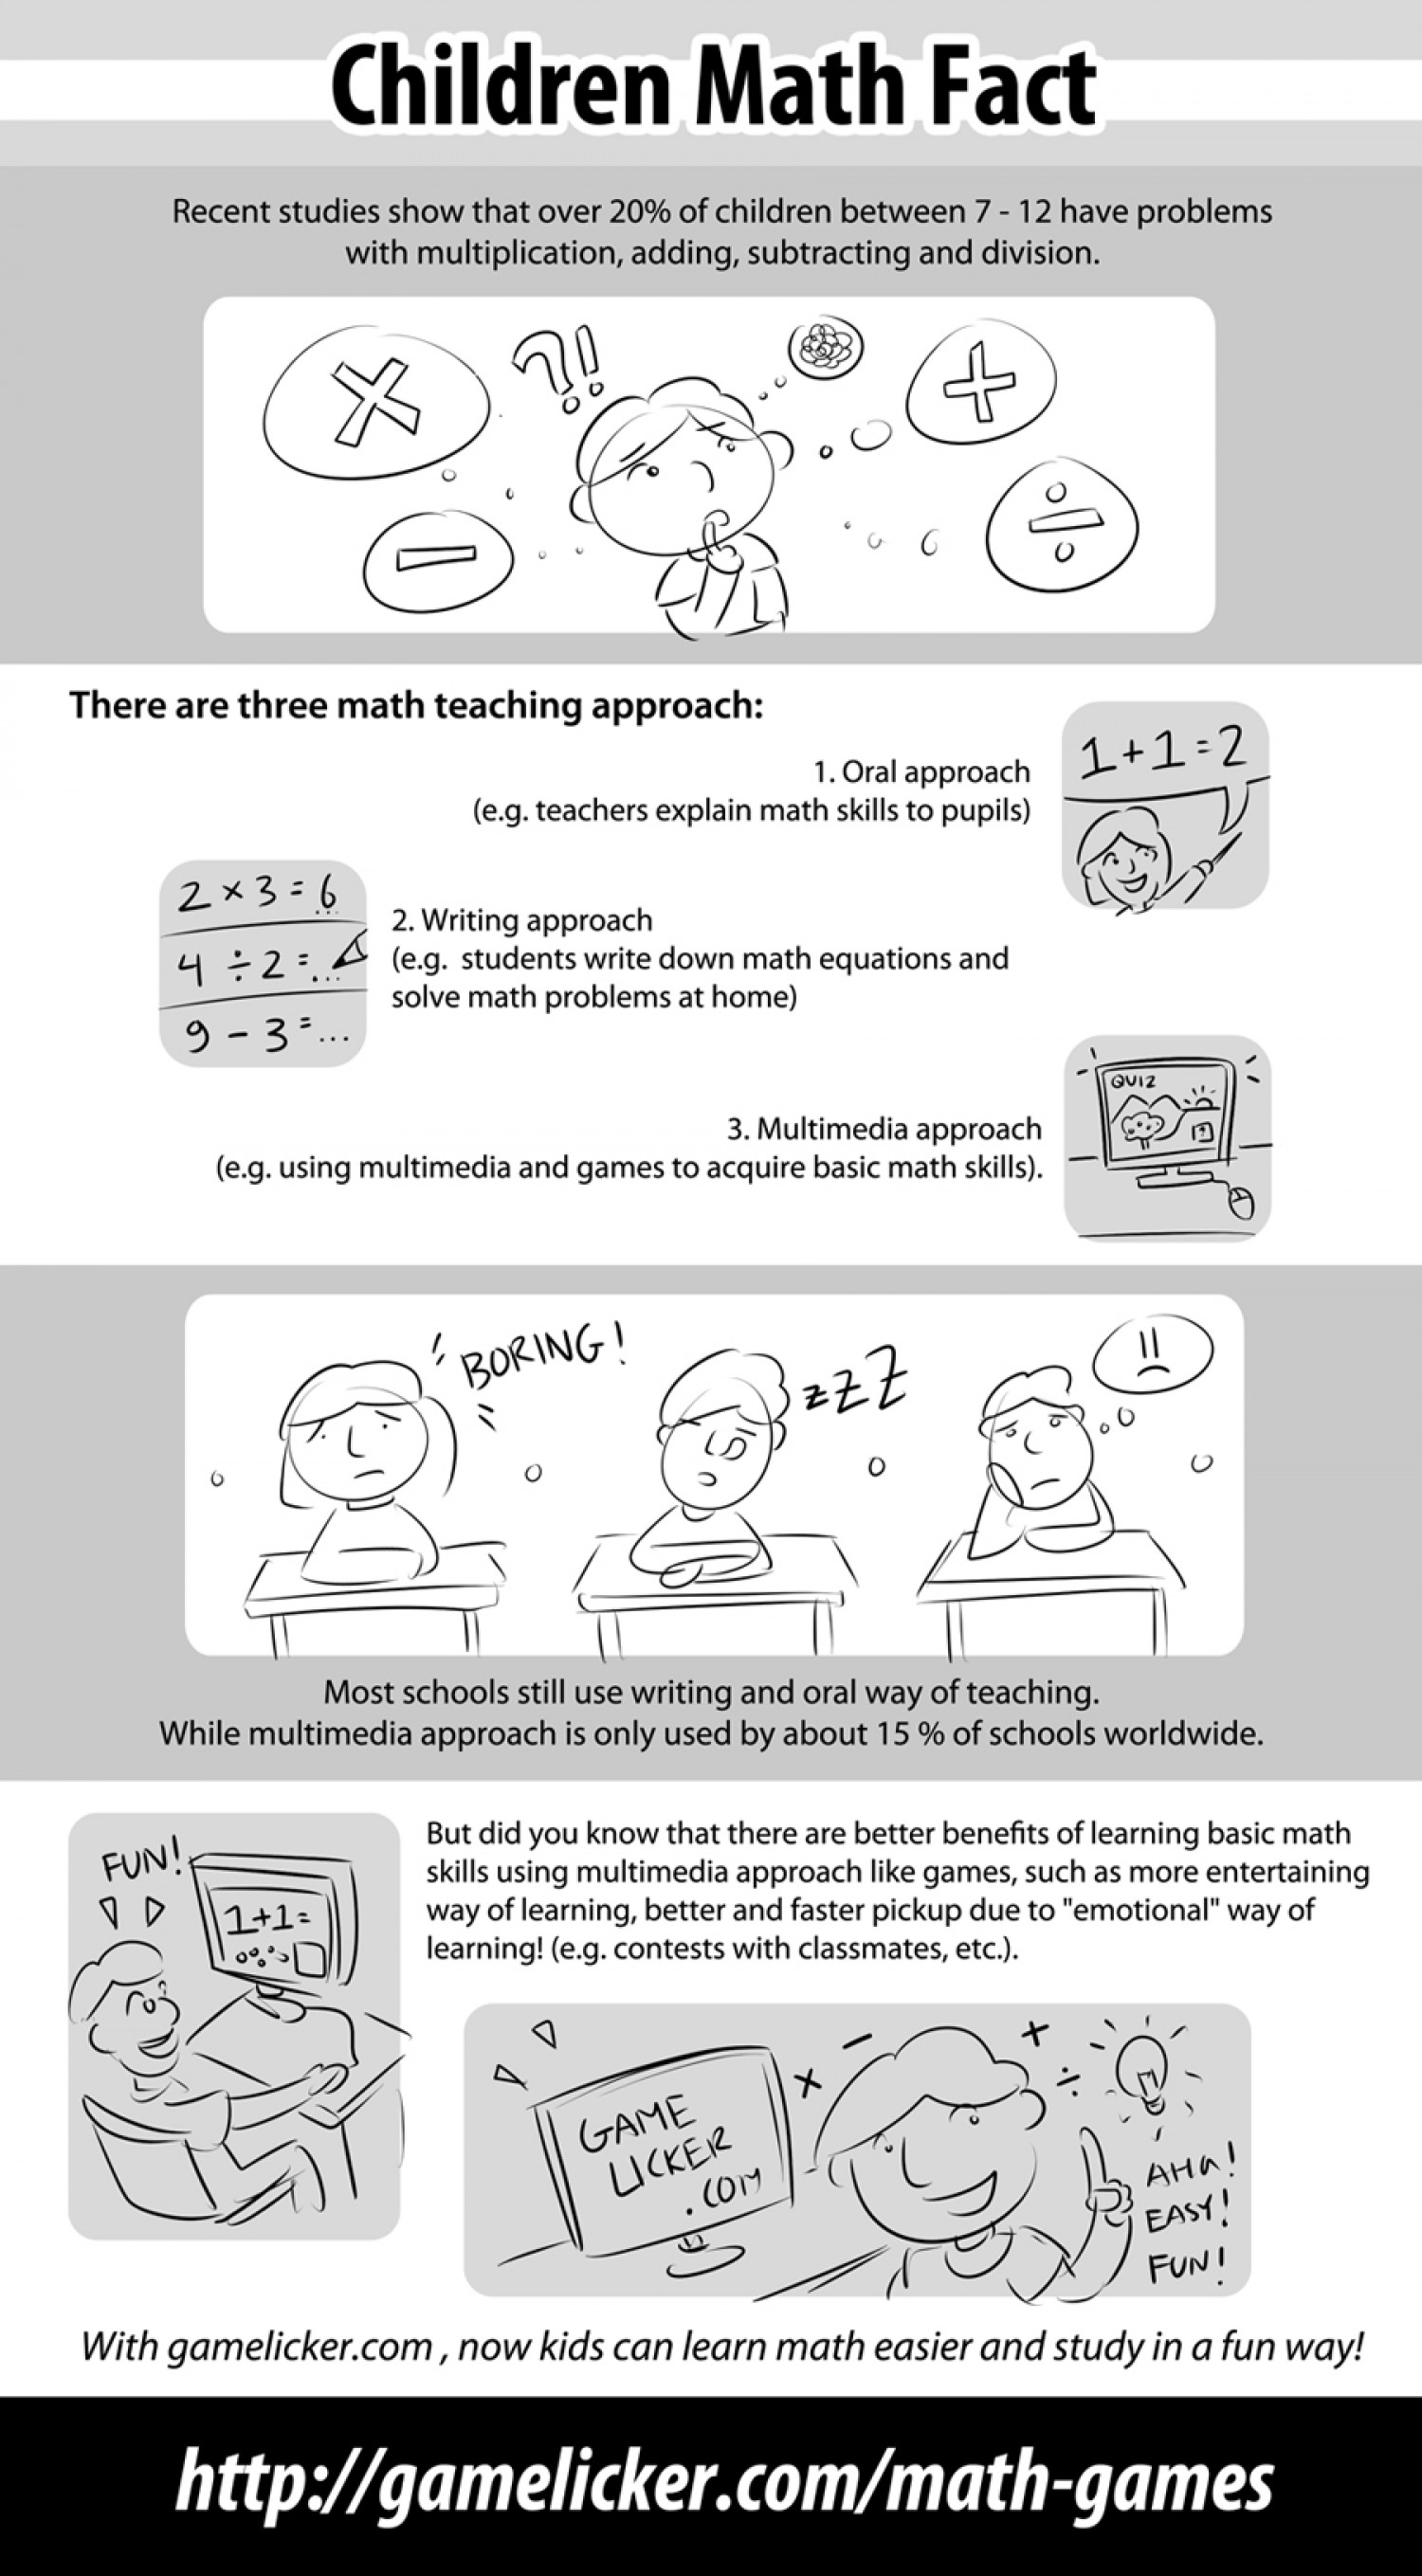 Learning Math Through Games Infographic